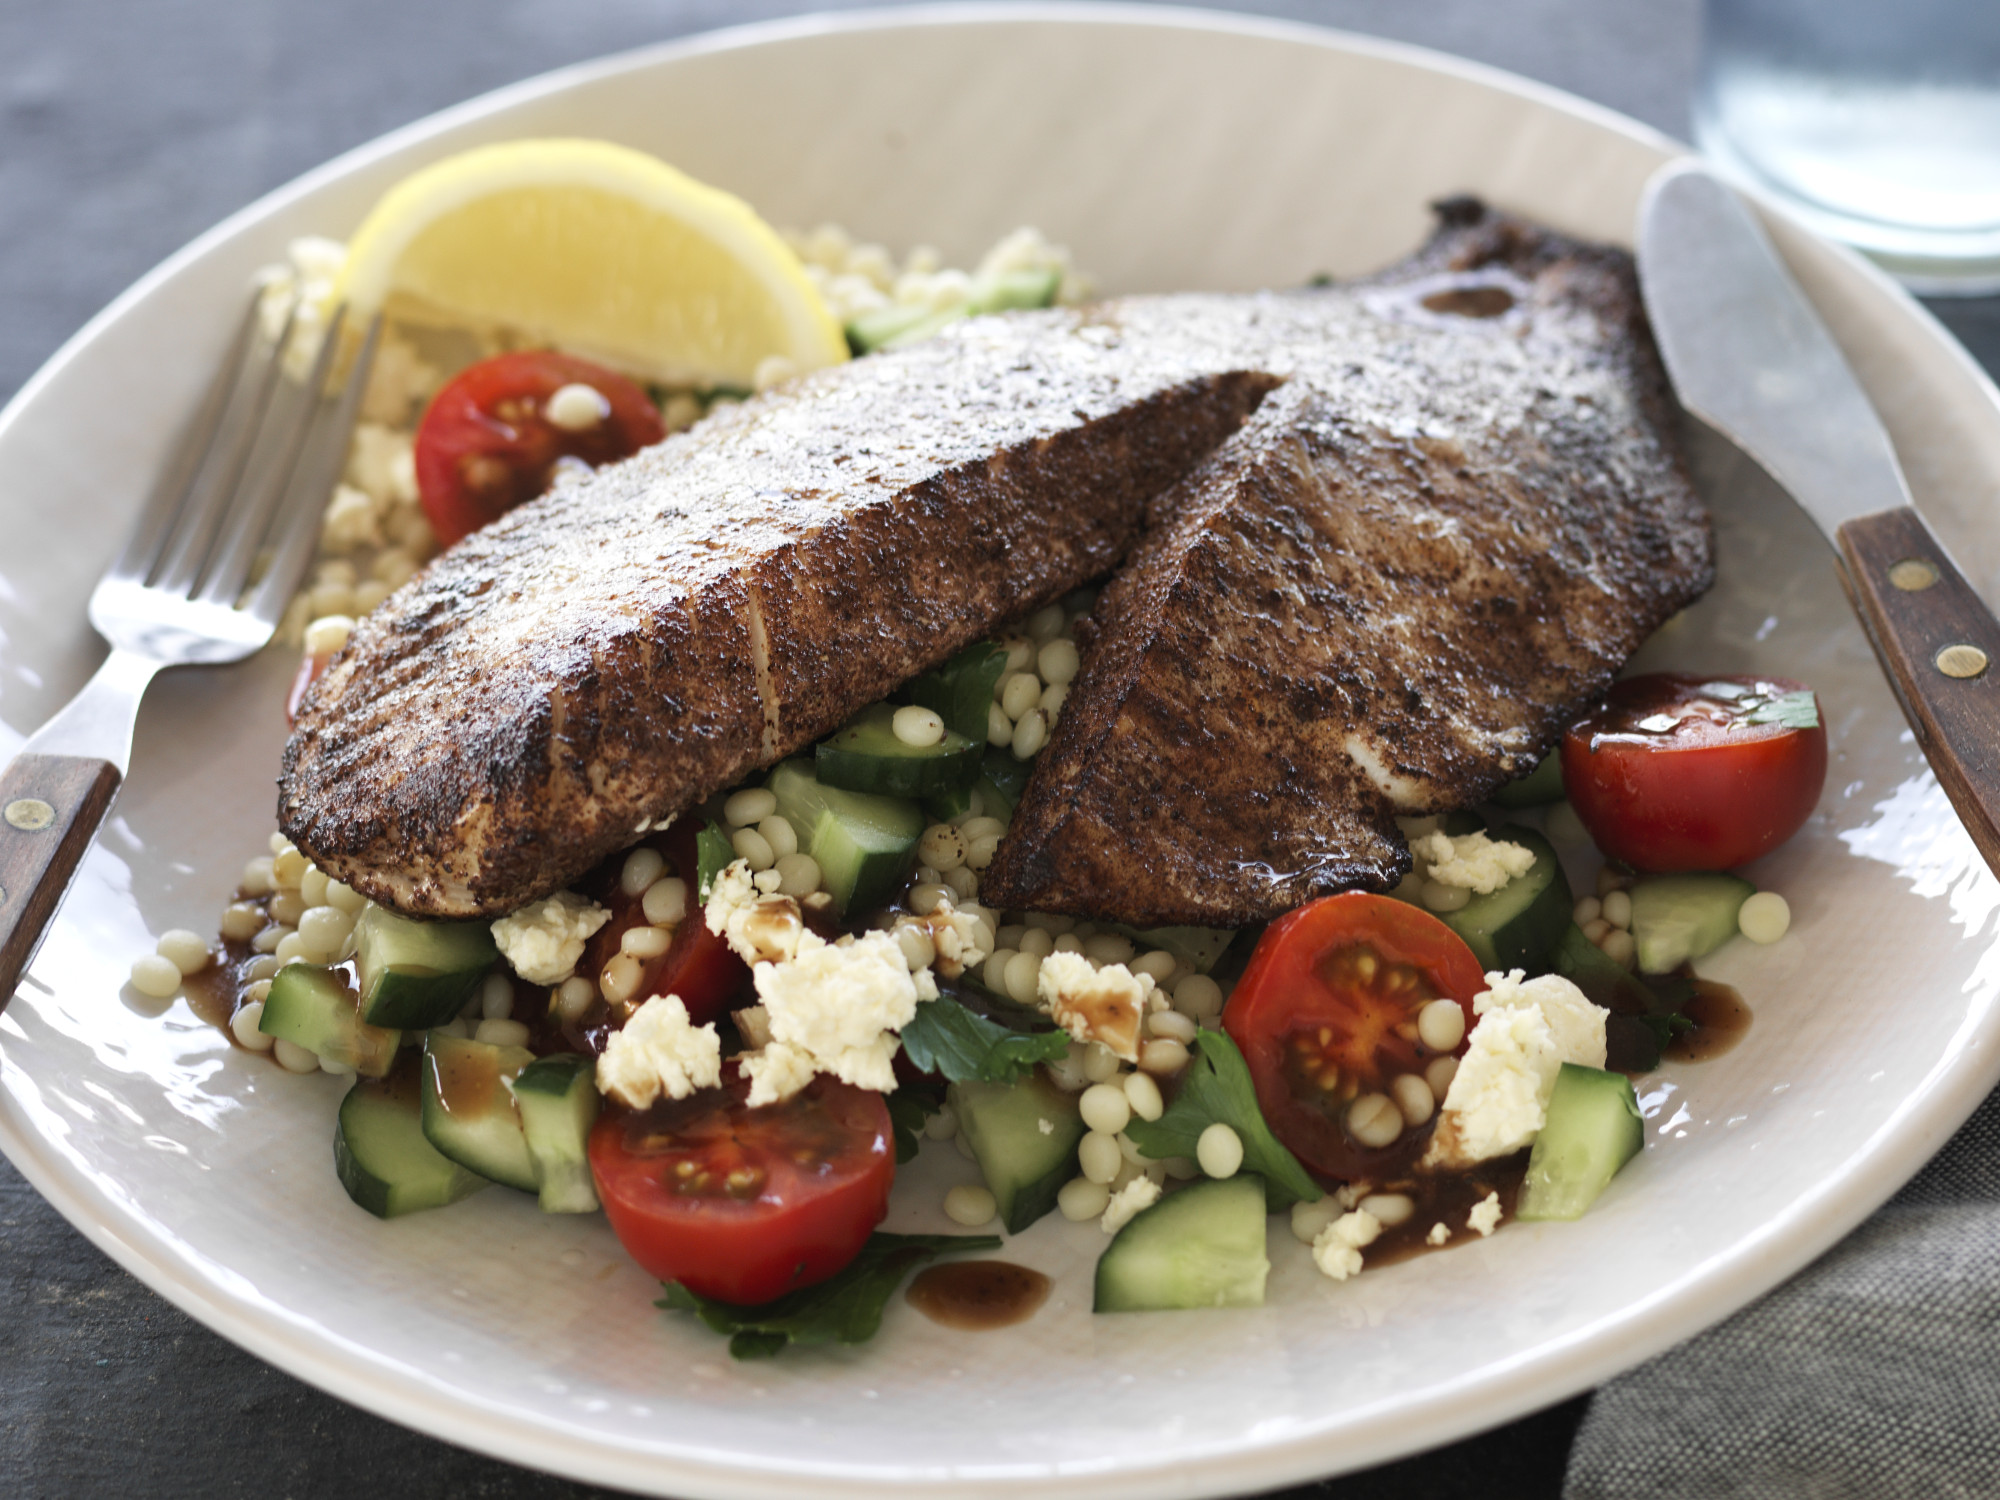 Sumac Fish Fillets and Couscous